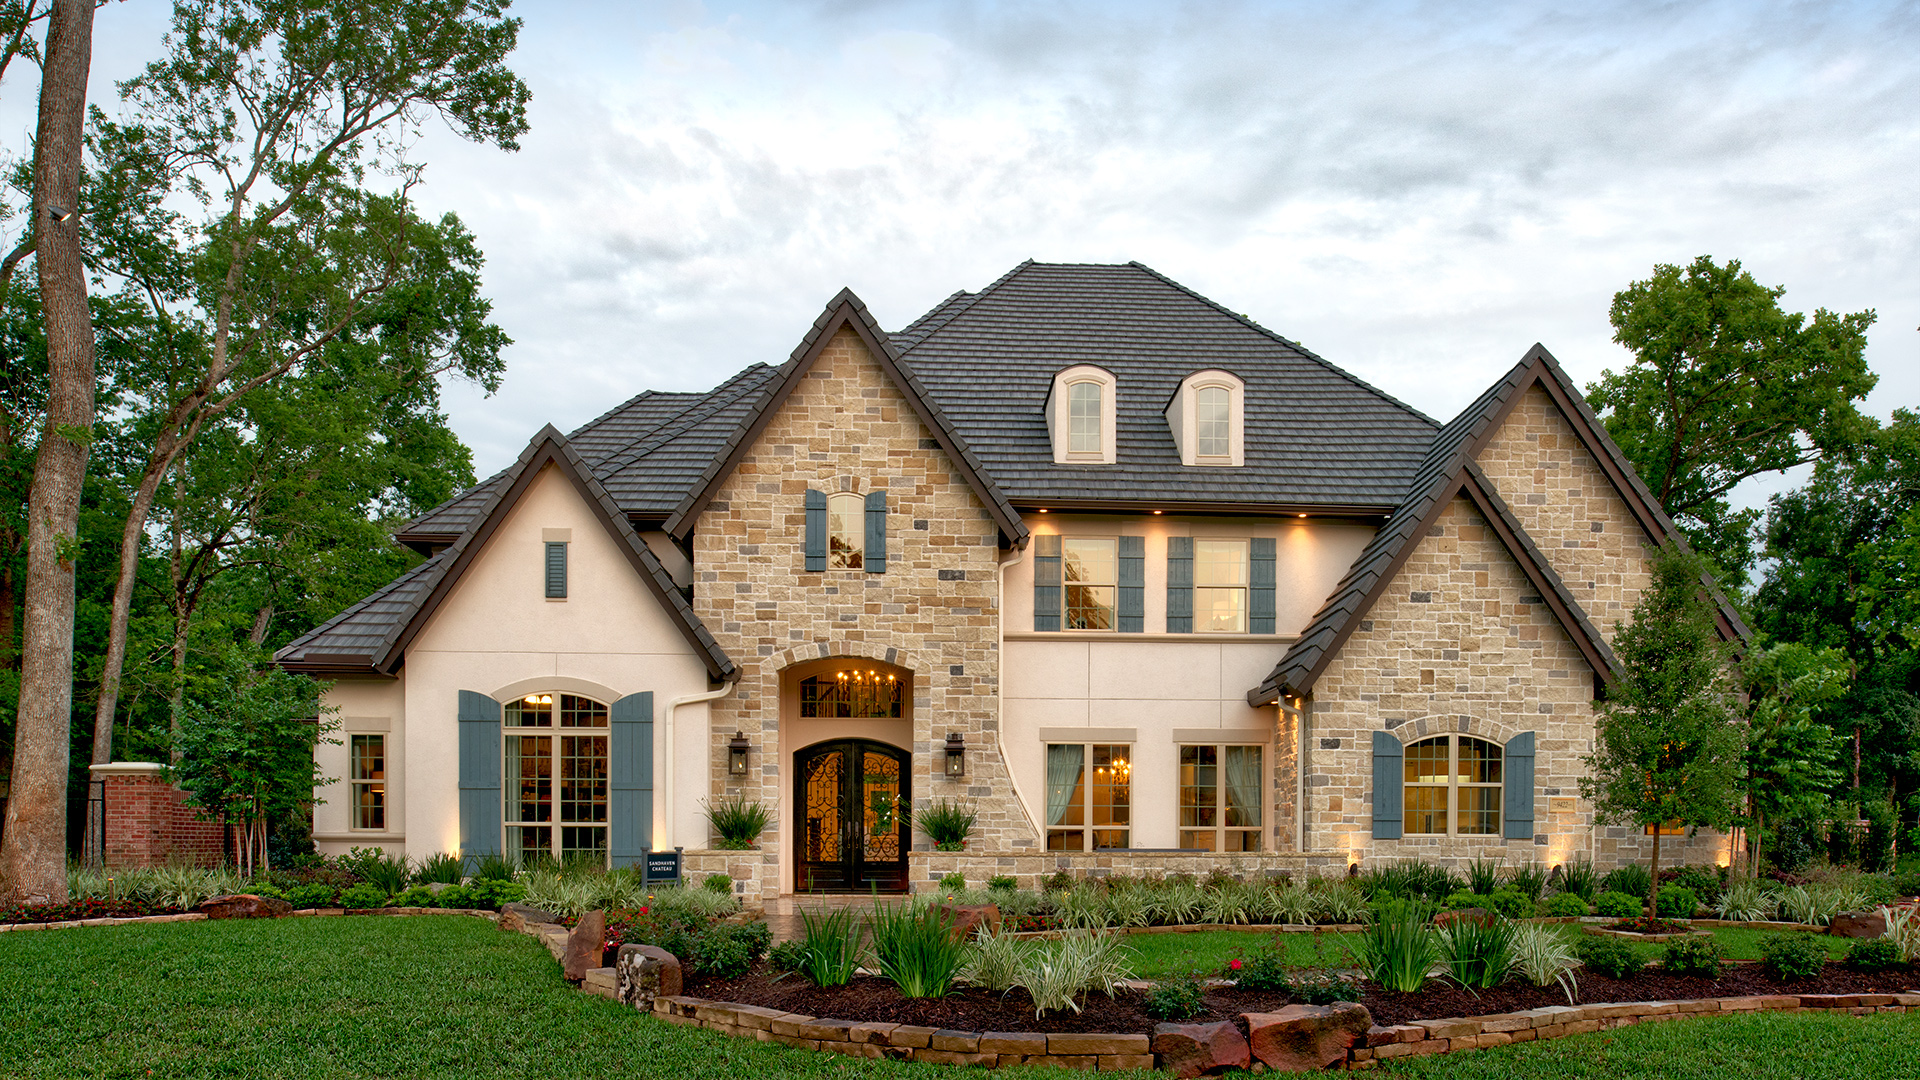 Sandhaven Chateau Model Home Now Open - Sienna Plantation - Missouri City, TX